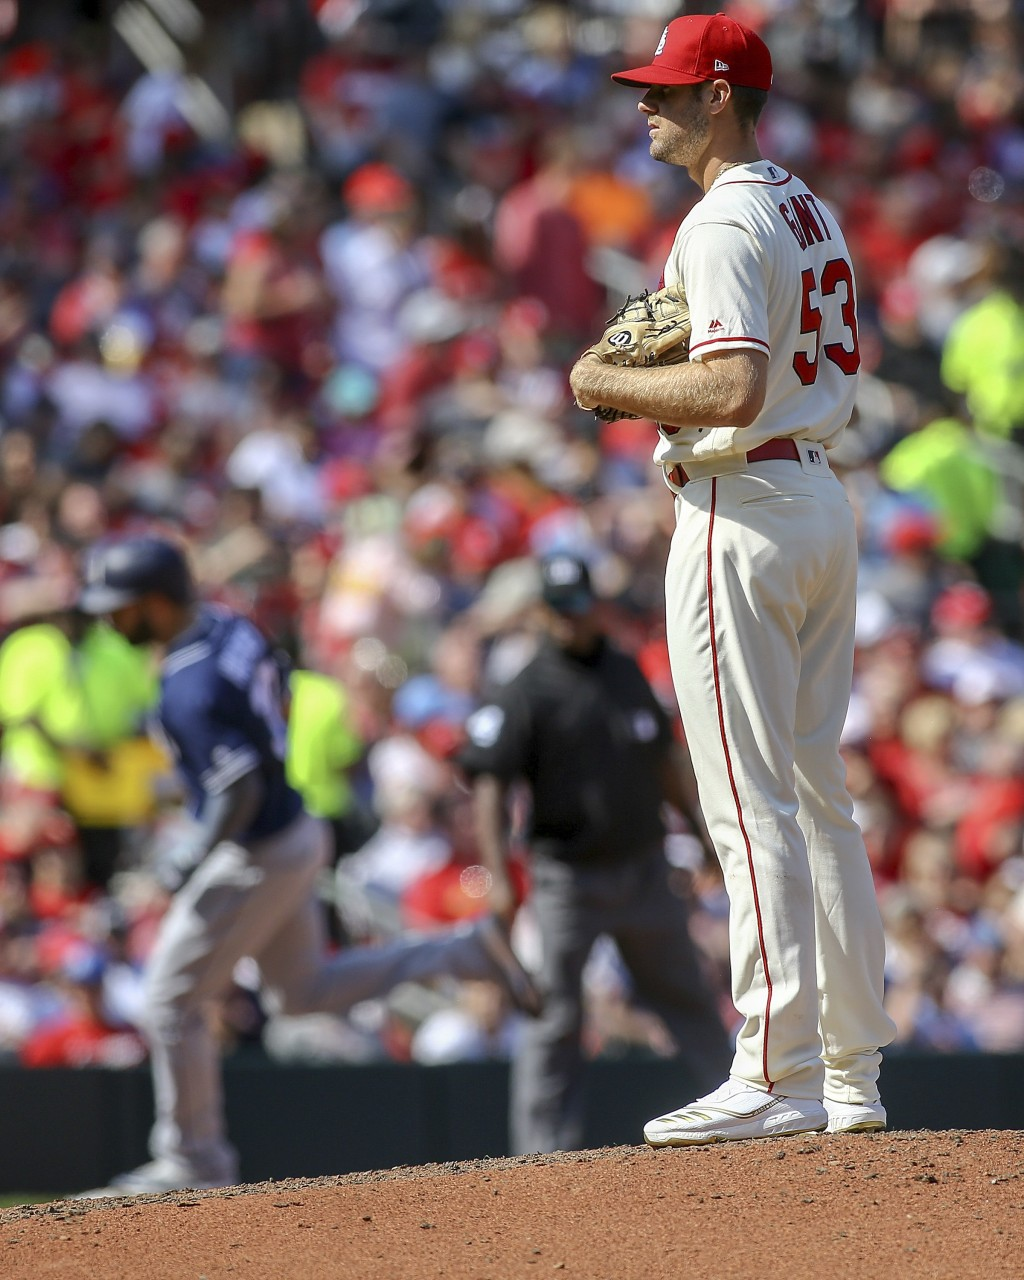 St. Louis Cardinals relief pitcher John Gant (53) pauses on the mound as San Diego Padres' Eric Hosmer runs the bases after hitting a solo home run du